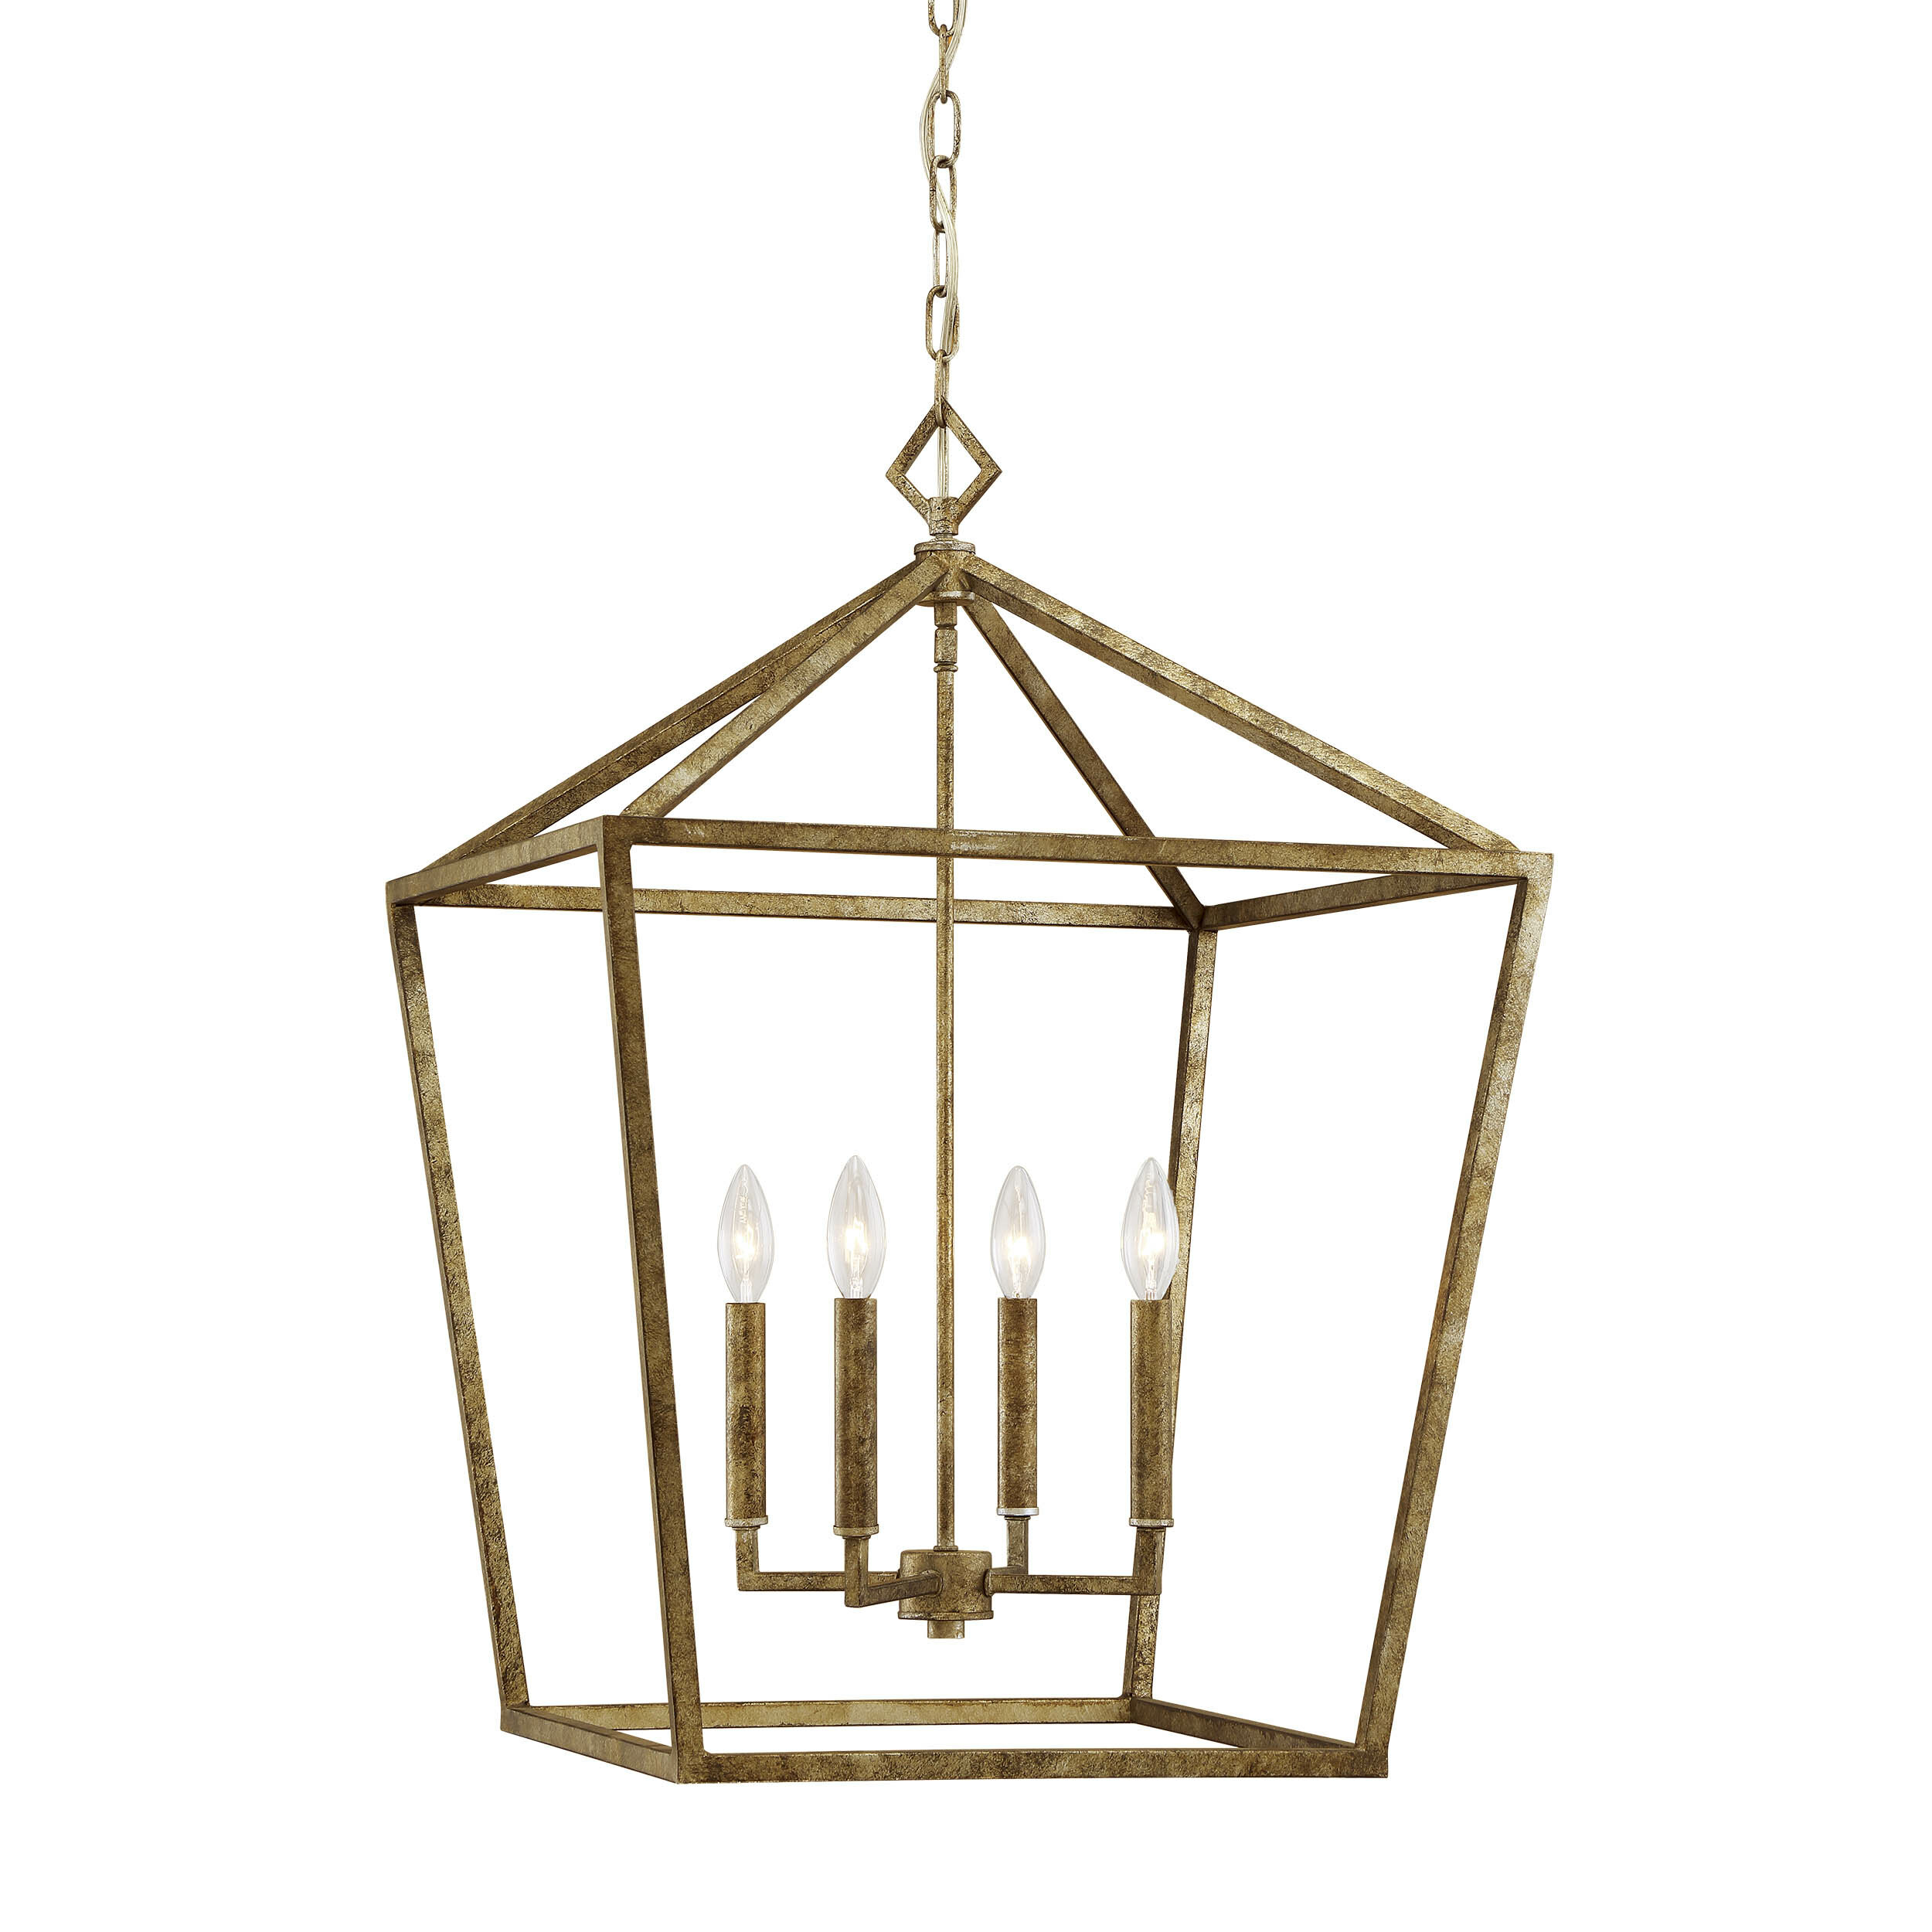 Varnum 4-Light Lantern Pendant in Isoline 2-Light Lantern Geometric Pendants (Image 29 of 30)